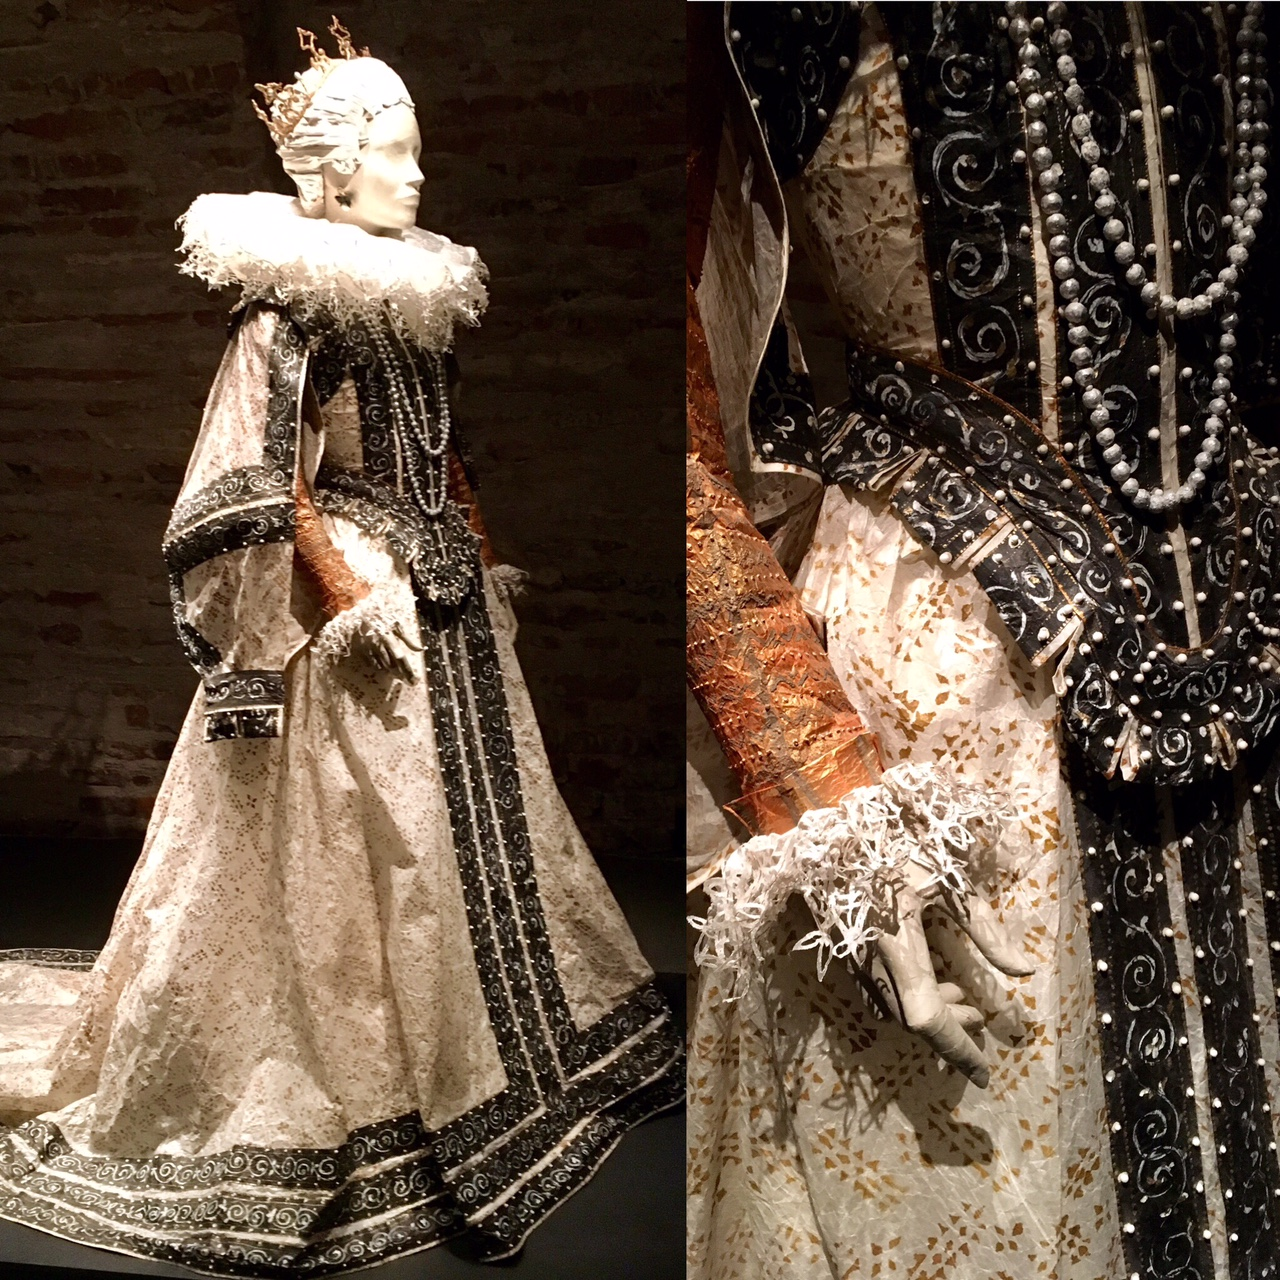 Cached Renaissance fashion influence on today